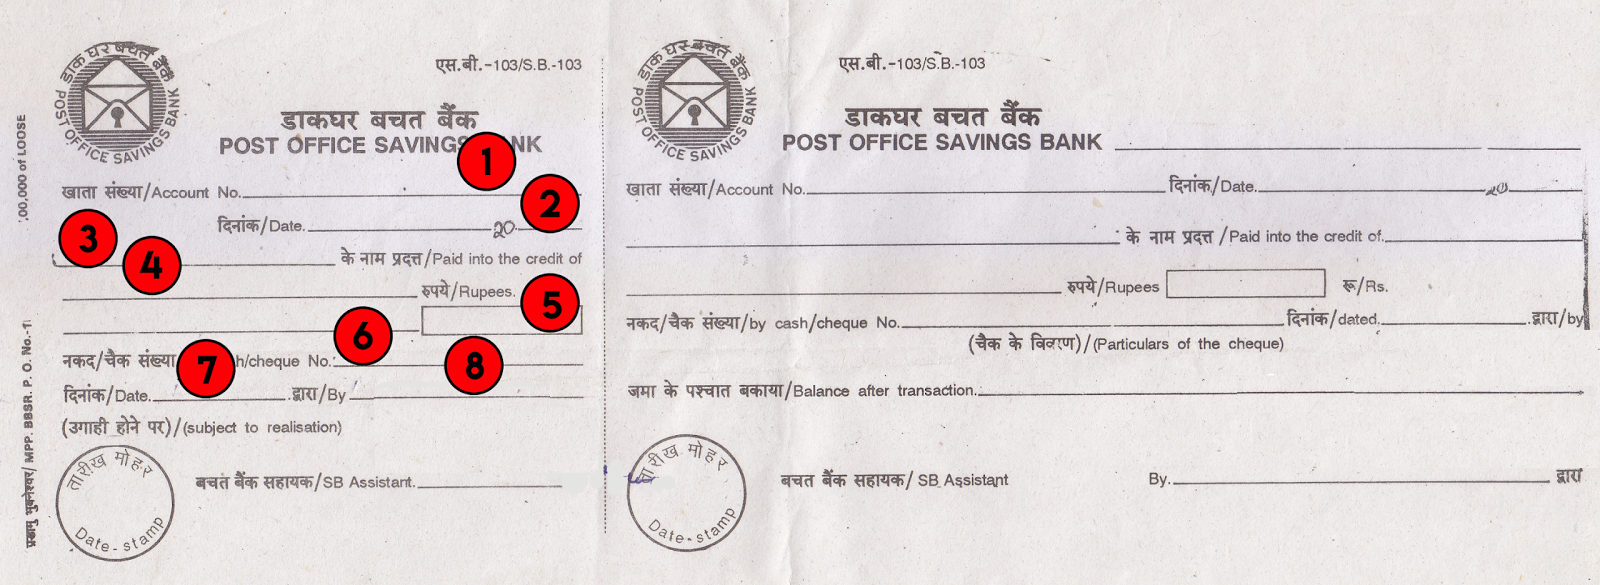 deposit form fill up  How to fill India Post cheque deposit slip sample form fill ...